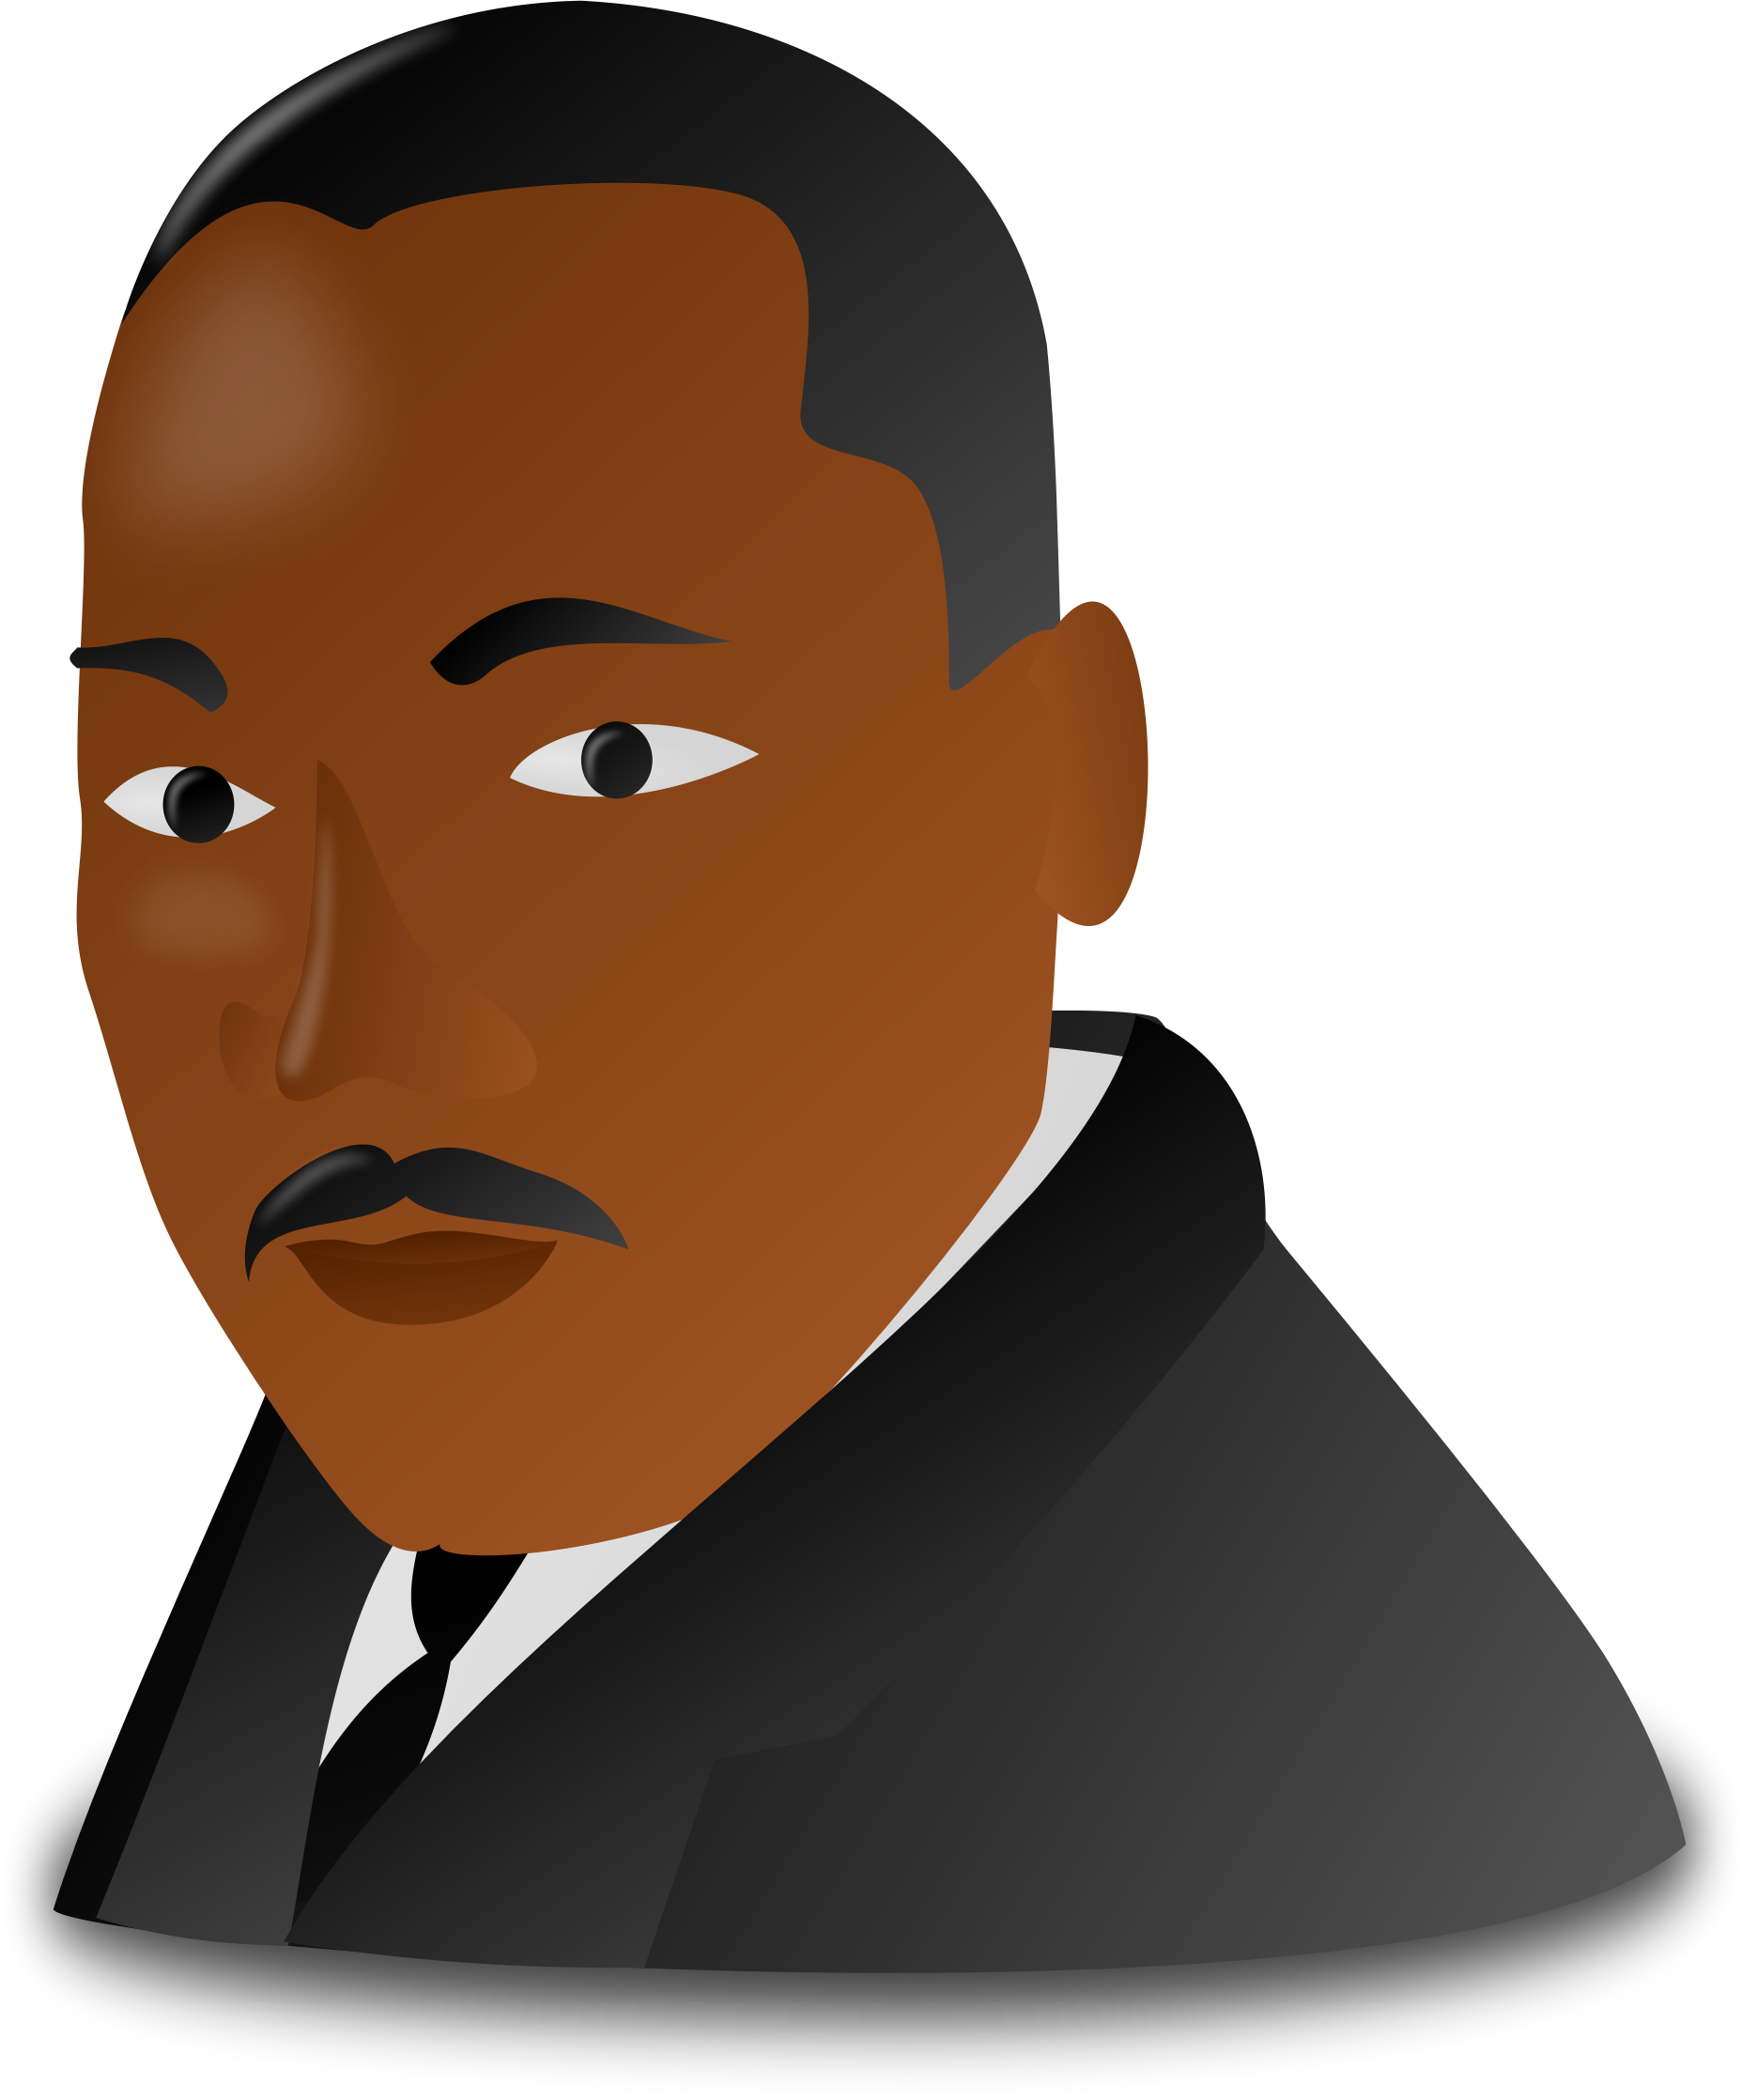 martin luther king jr png